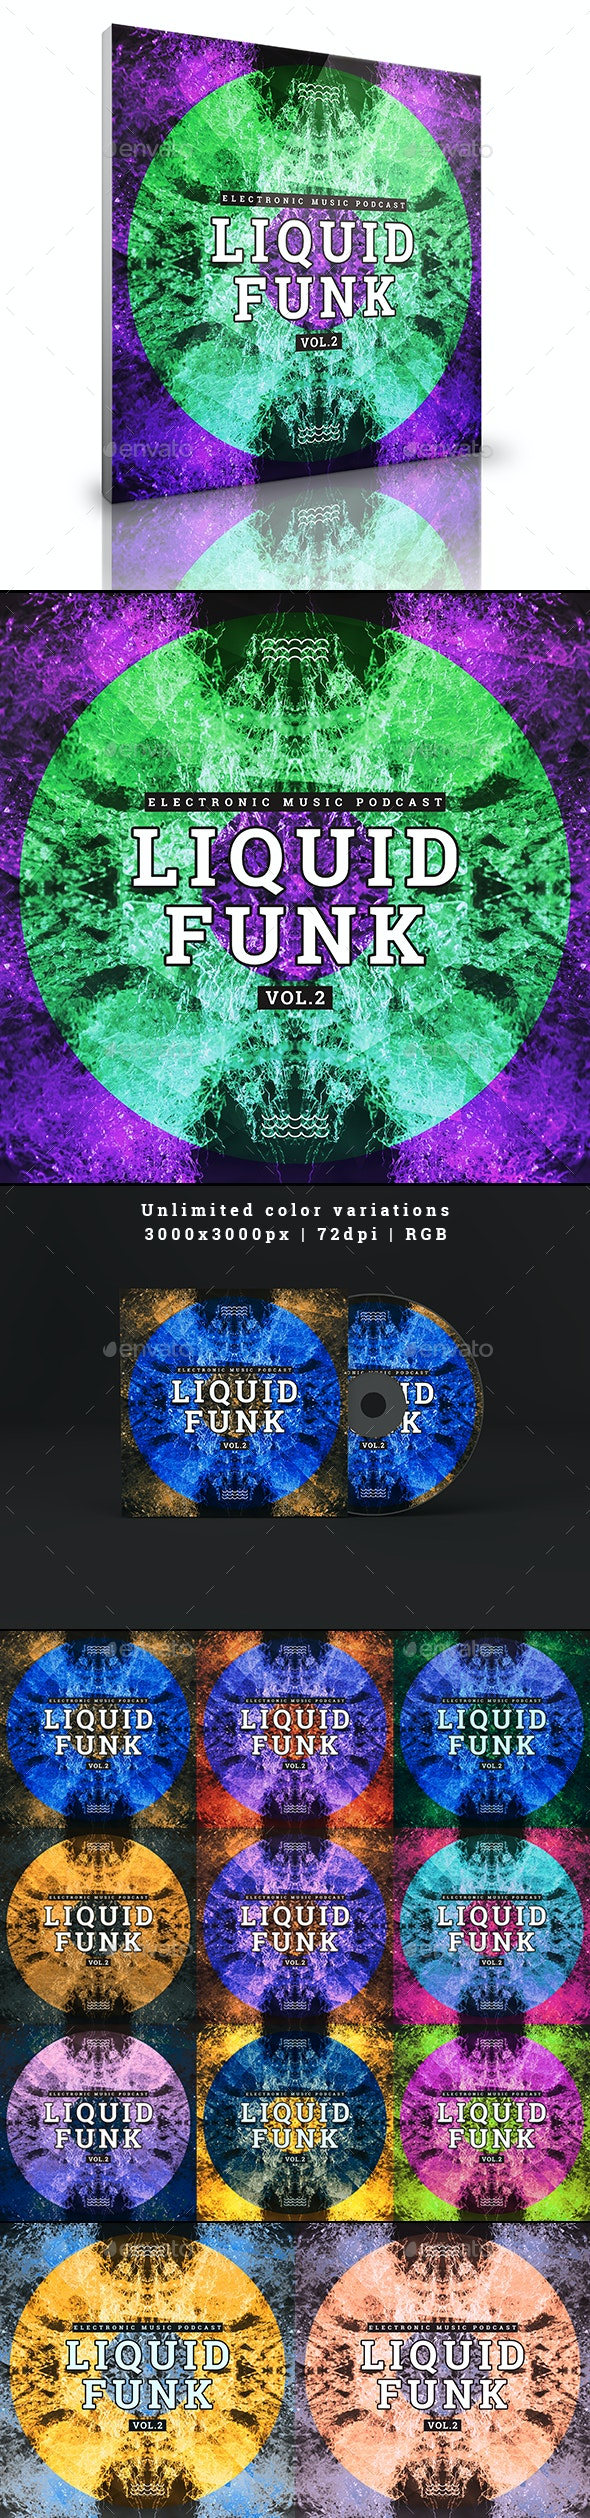 Liquid Funk Electronic Music Podcast Album Cover Web Template - Miscellaneous Social Media